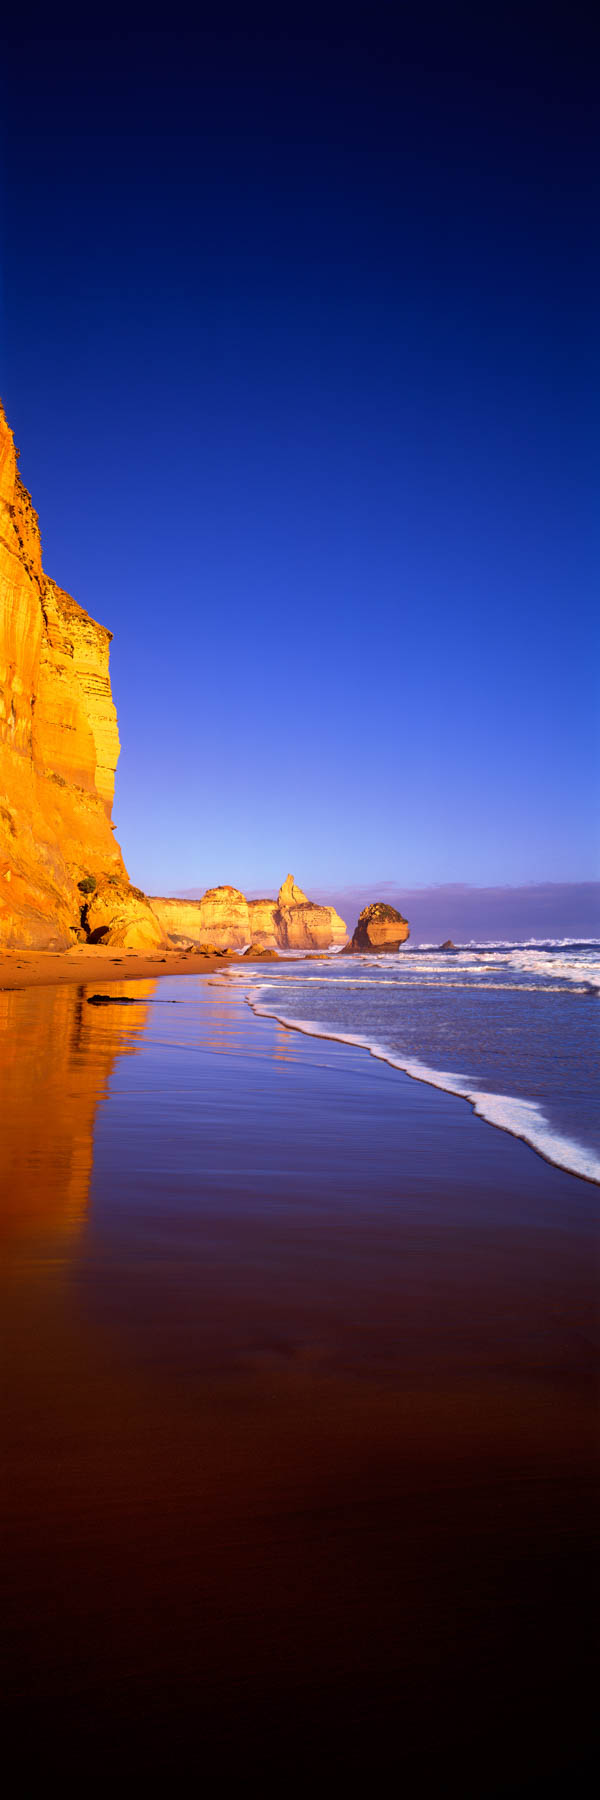 A vertical view of The Twelve Apostles from the beach on a beautiful, calm day.